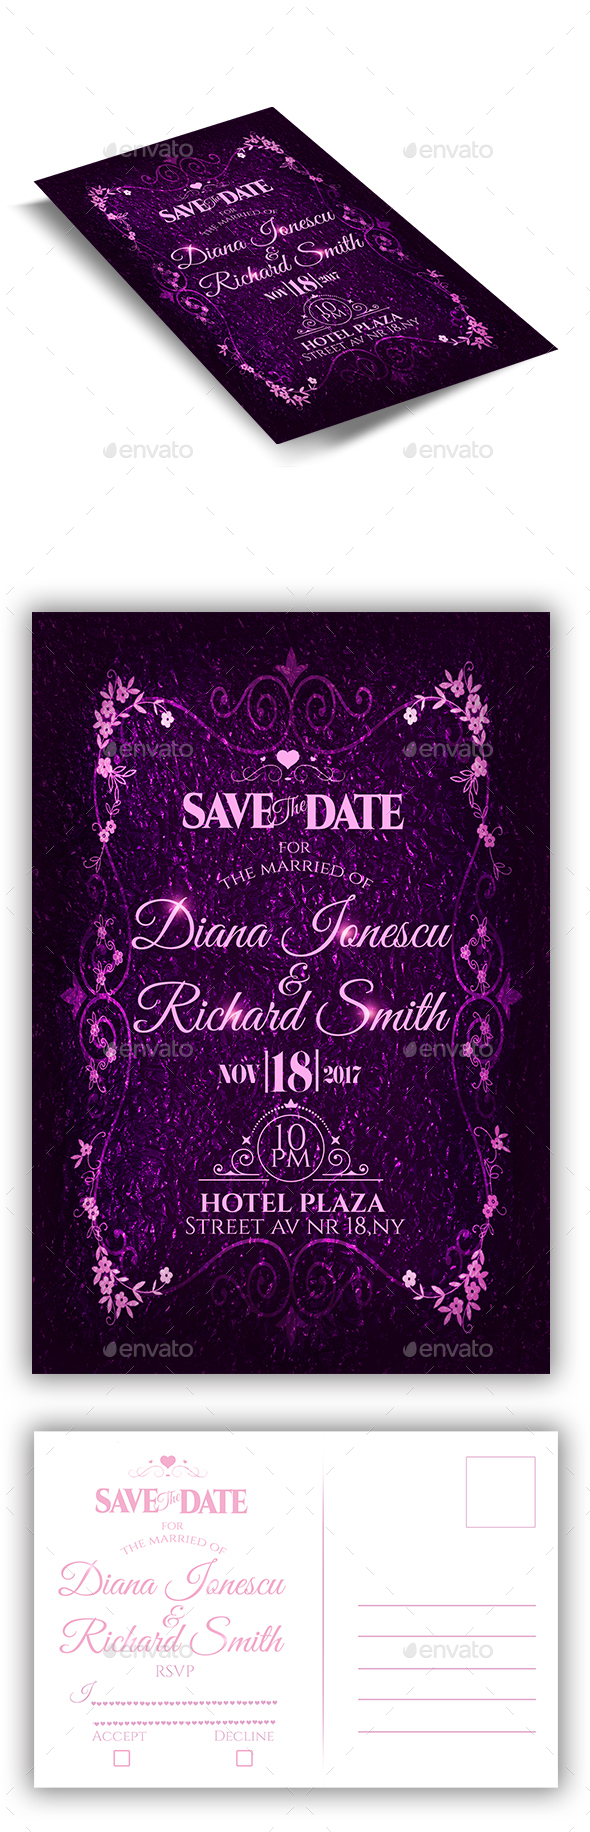 Wedding Invitation Flyer + RSVP - Weddings Cards & Invites